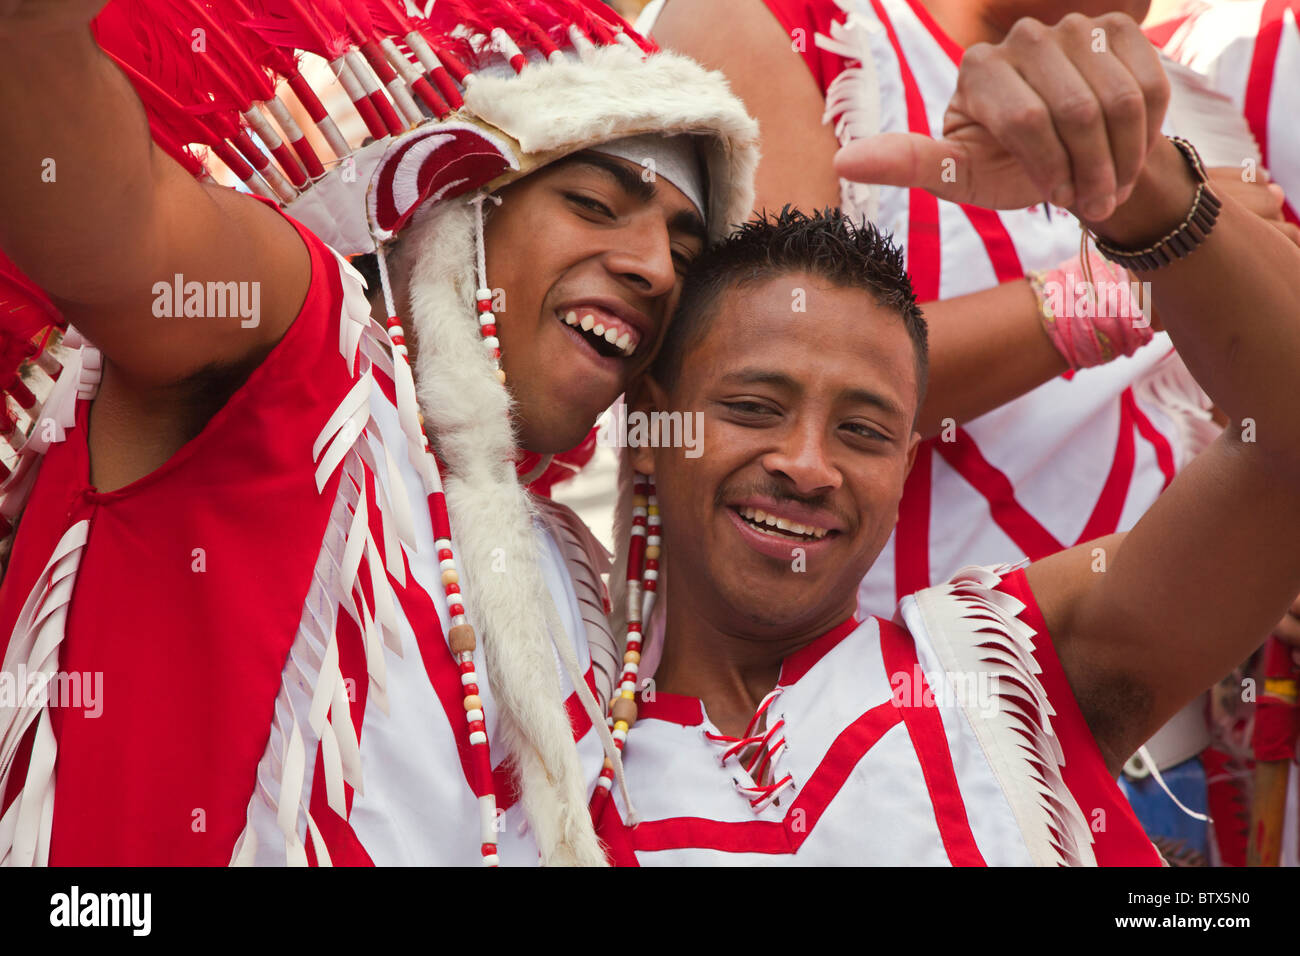 NATIVE DANCE TROUPES from all over MEXICO celebrate of San Miguel Arcangel, the patron saint of SAN MIGUEL DE ALLENDE Stock Photo